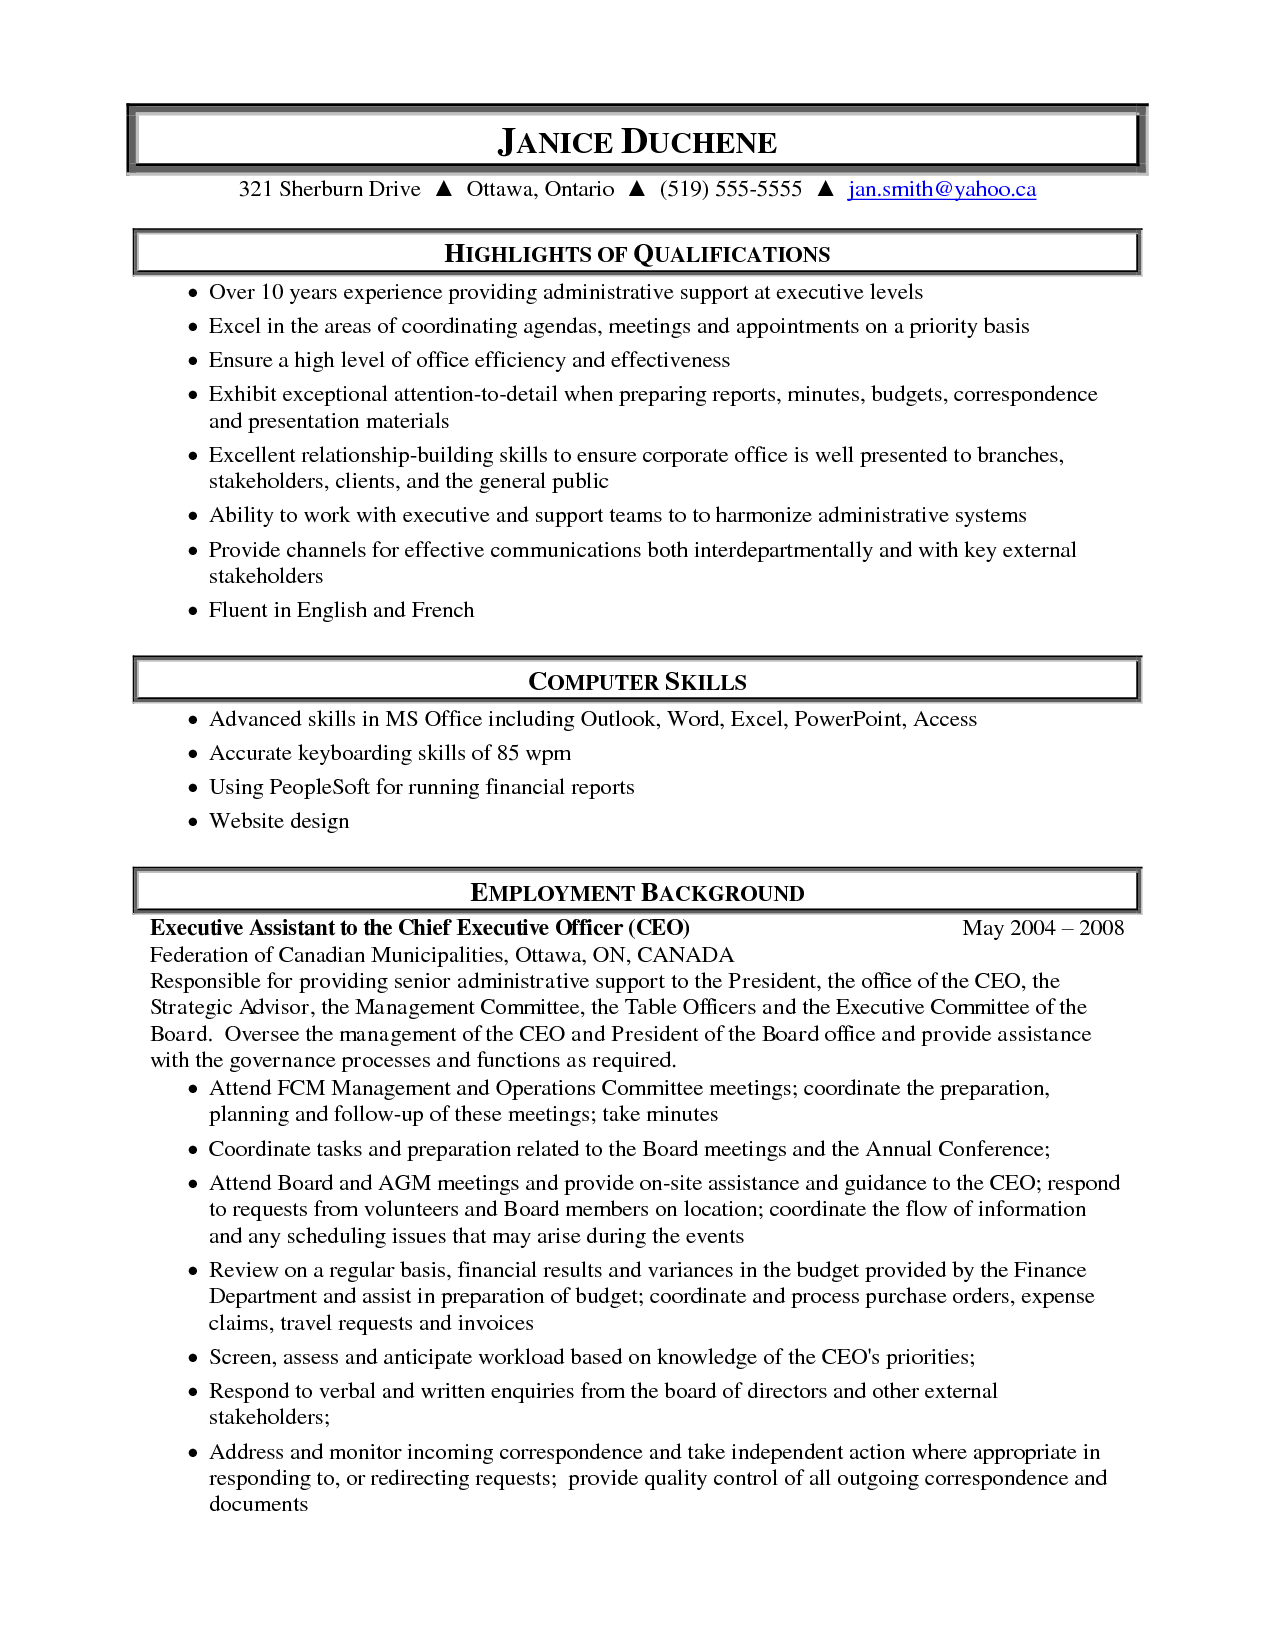 Executive Assistant Resume Samples Sample Resume Of Administrative Assistant Sample Resume Of